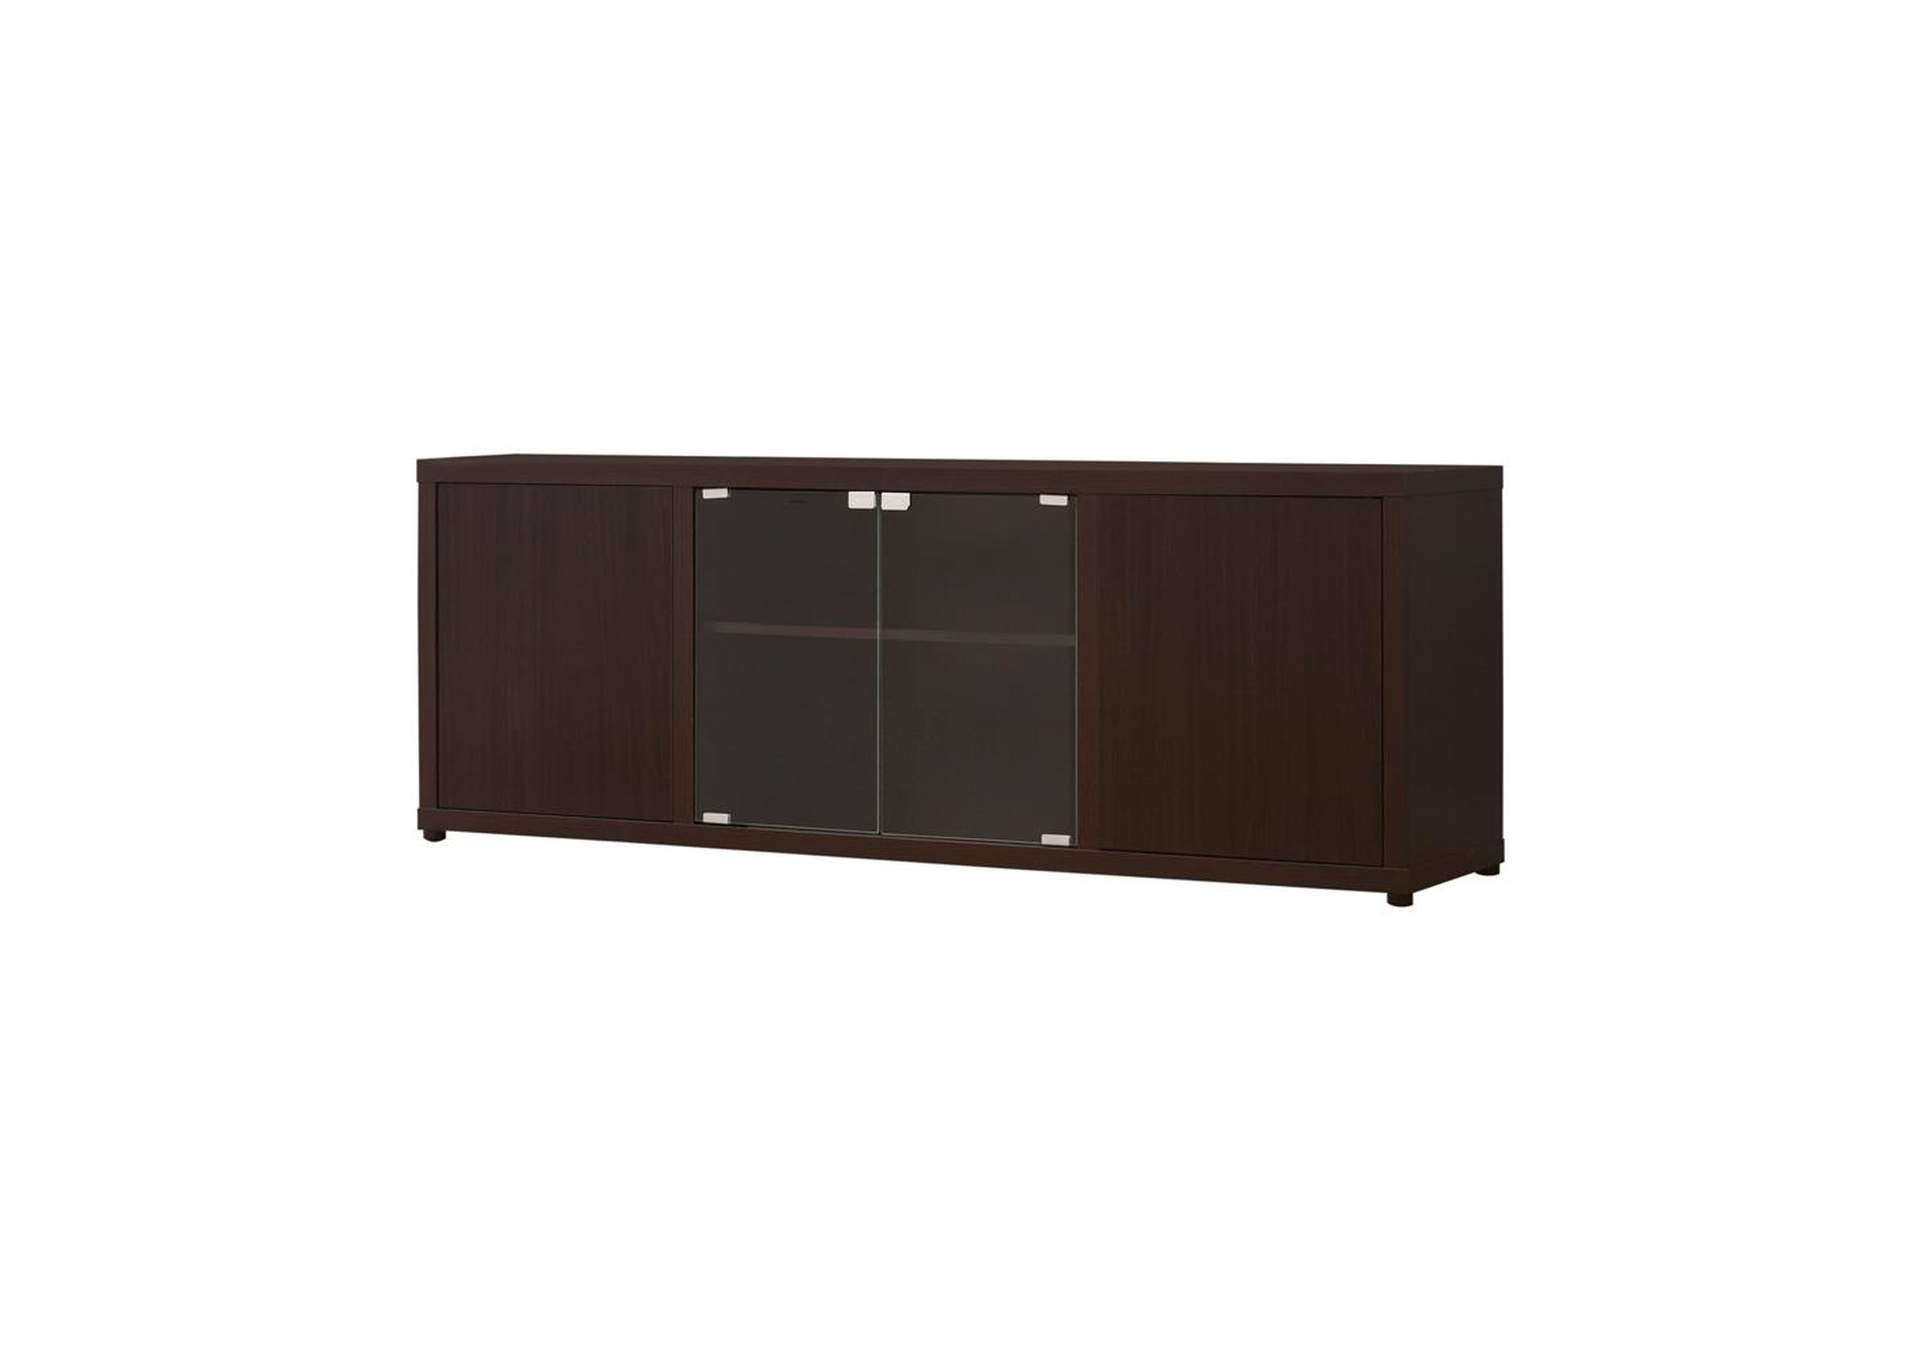 Cappuccino Casual Cappuccino TV Console W/ Push-To-Open Glass Doors,Coaster Furniture